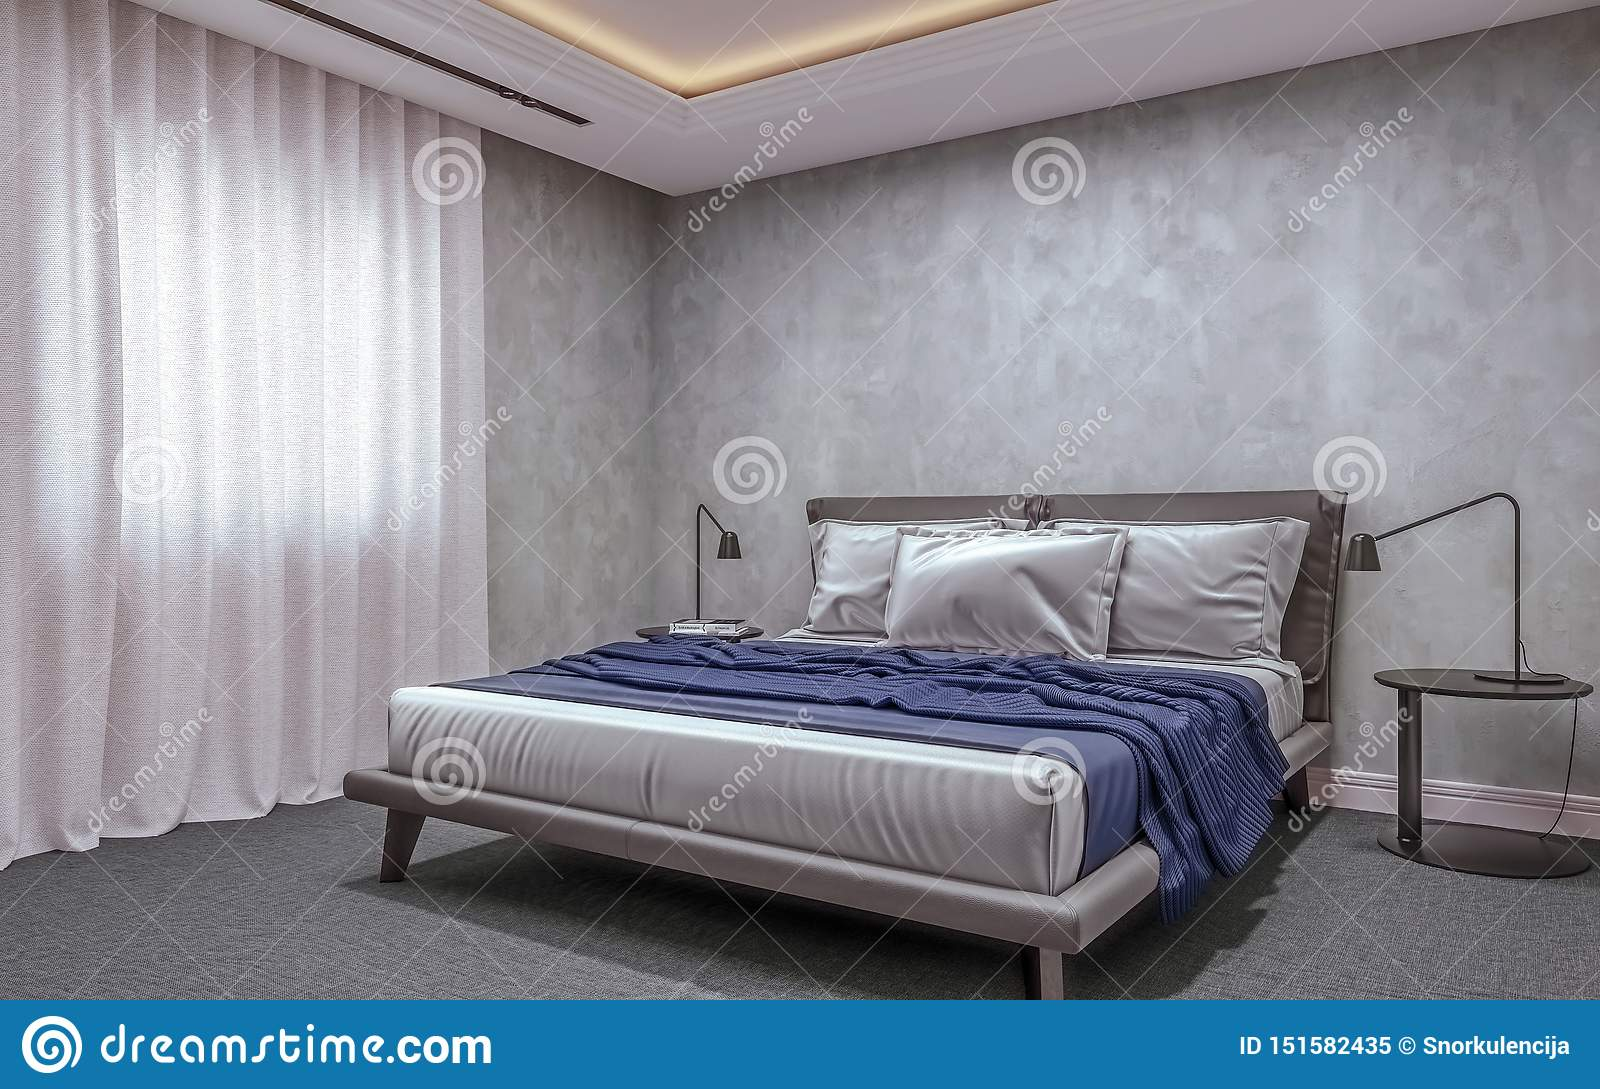 Modern Interior Design Of Basement Bedroom With Small Window King Size Bed With Bed Sheets Carpet Flooring Stock Illustration Illustration Of Large Decor 151582435